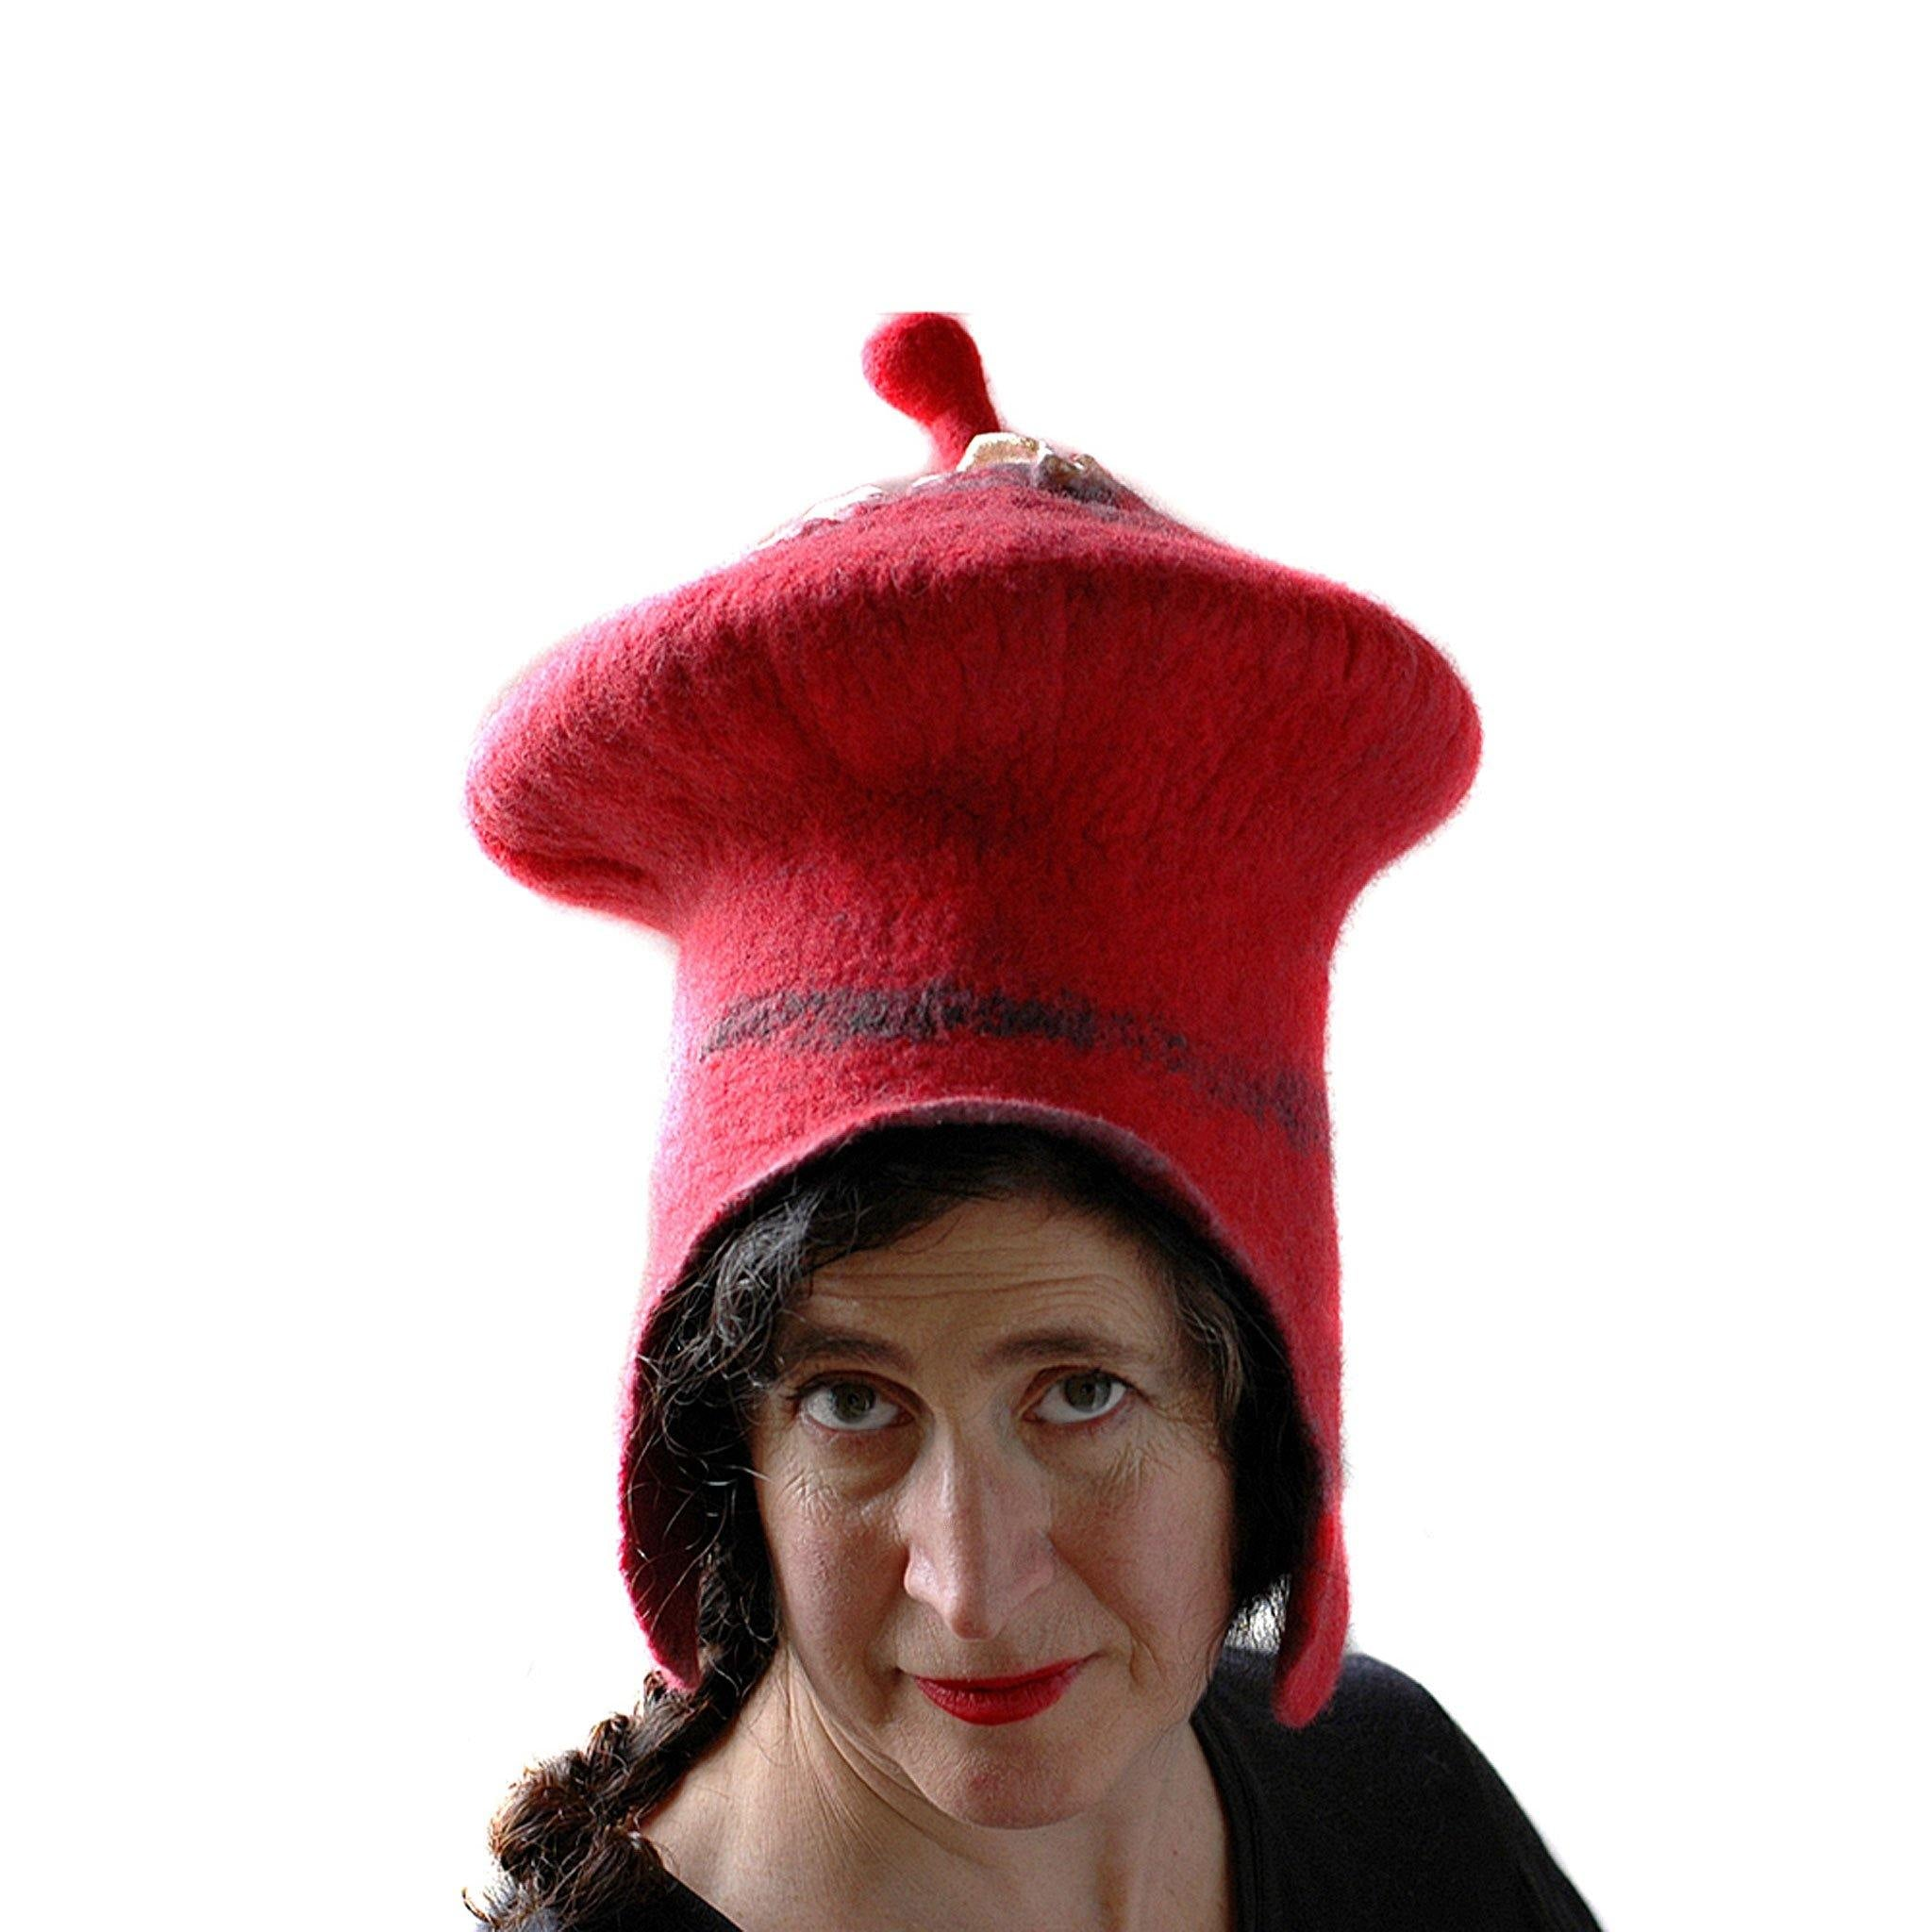 Watermelon Red Sci Fi Mushroom Wizard Hat with Earflaps - front view